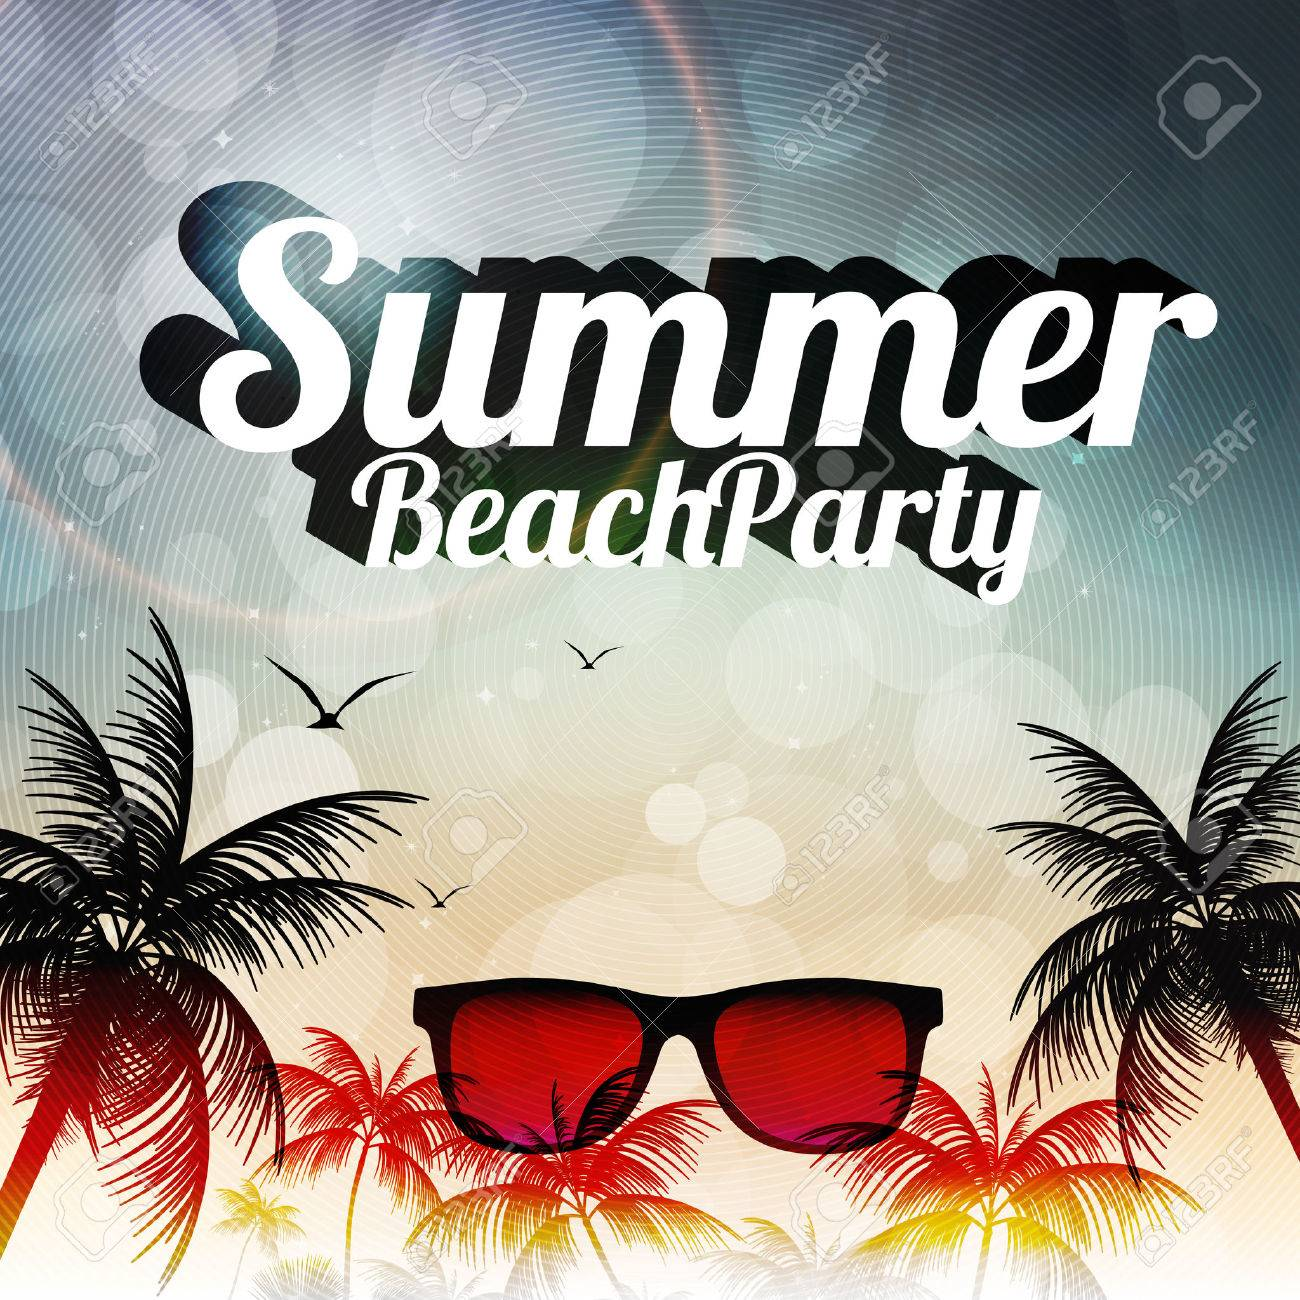 holiday flyer template stock illustrations cliparts and holiday flyer template summer beach party flyer design palmtrees vector illustration illustration